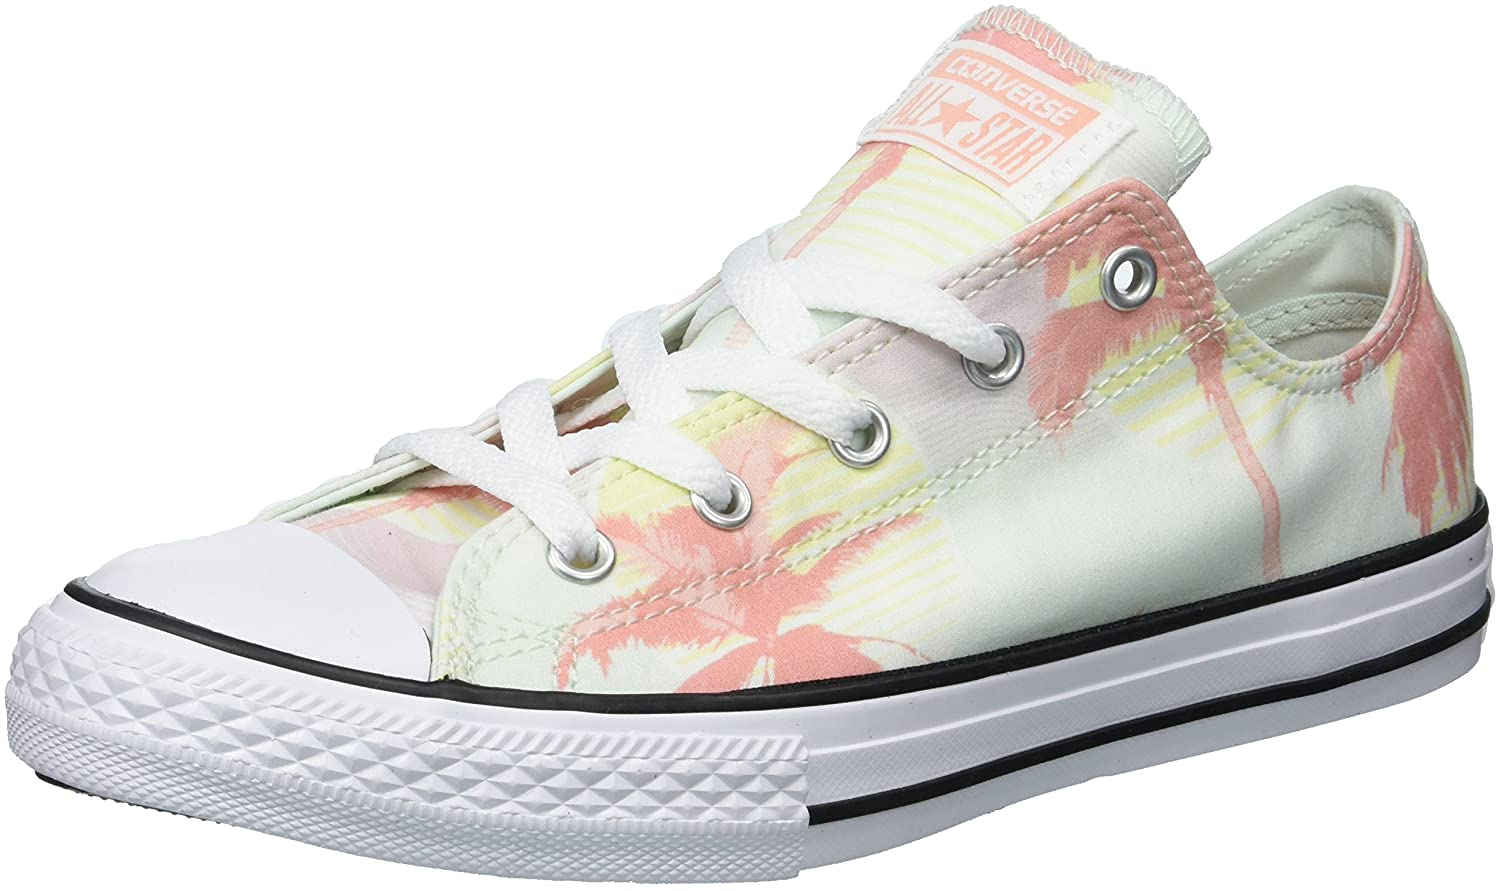 e3bc477710c9 Converse kids chuck taylor all star palm trees low top sneaker sneakers jpg  1500x891 Lime green